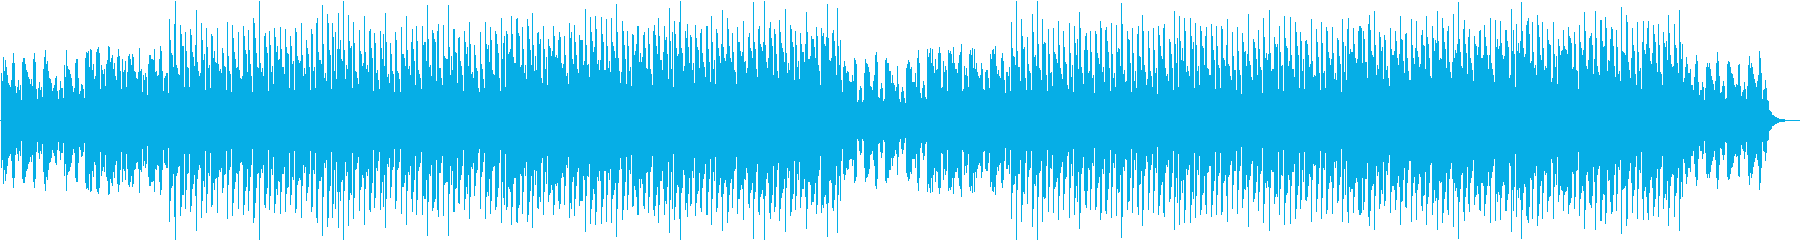 Japanese Movies, Animation, Mysterious Minimal's reproduced waveform